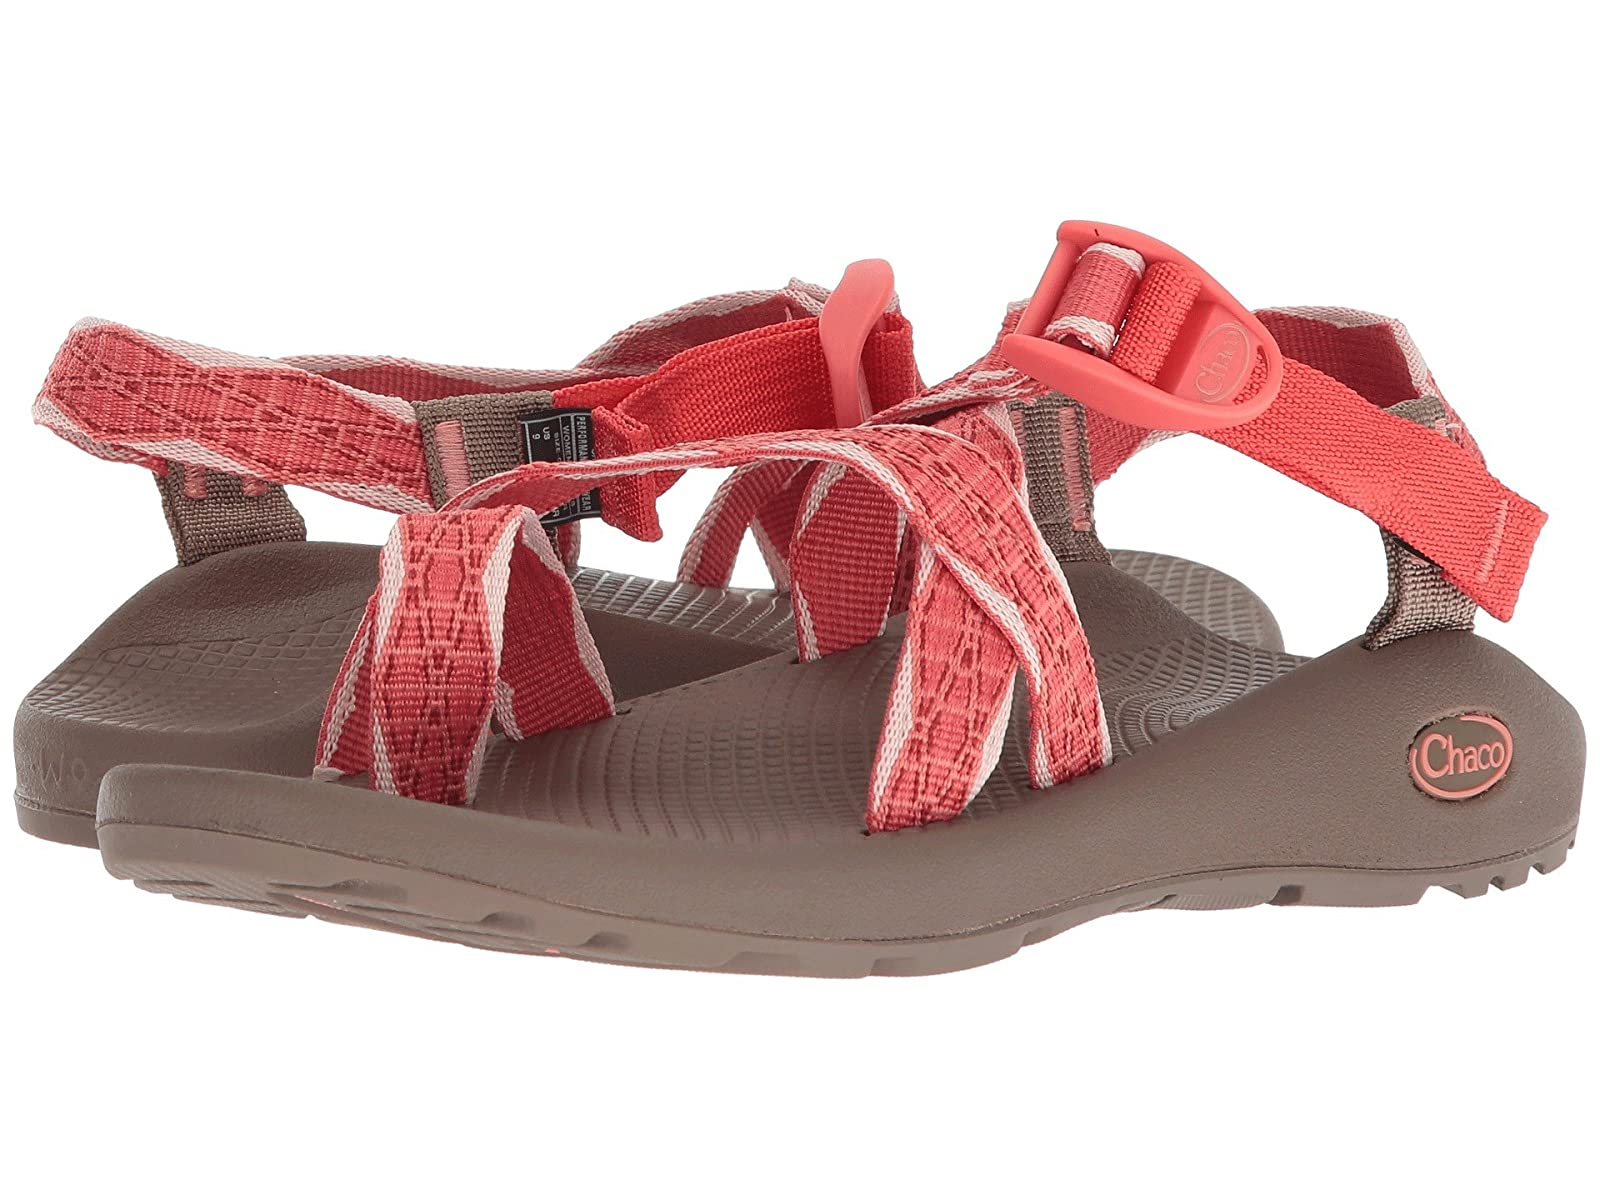 Chaco Z/2® ClassicComfortable and distinctive shoes